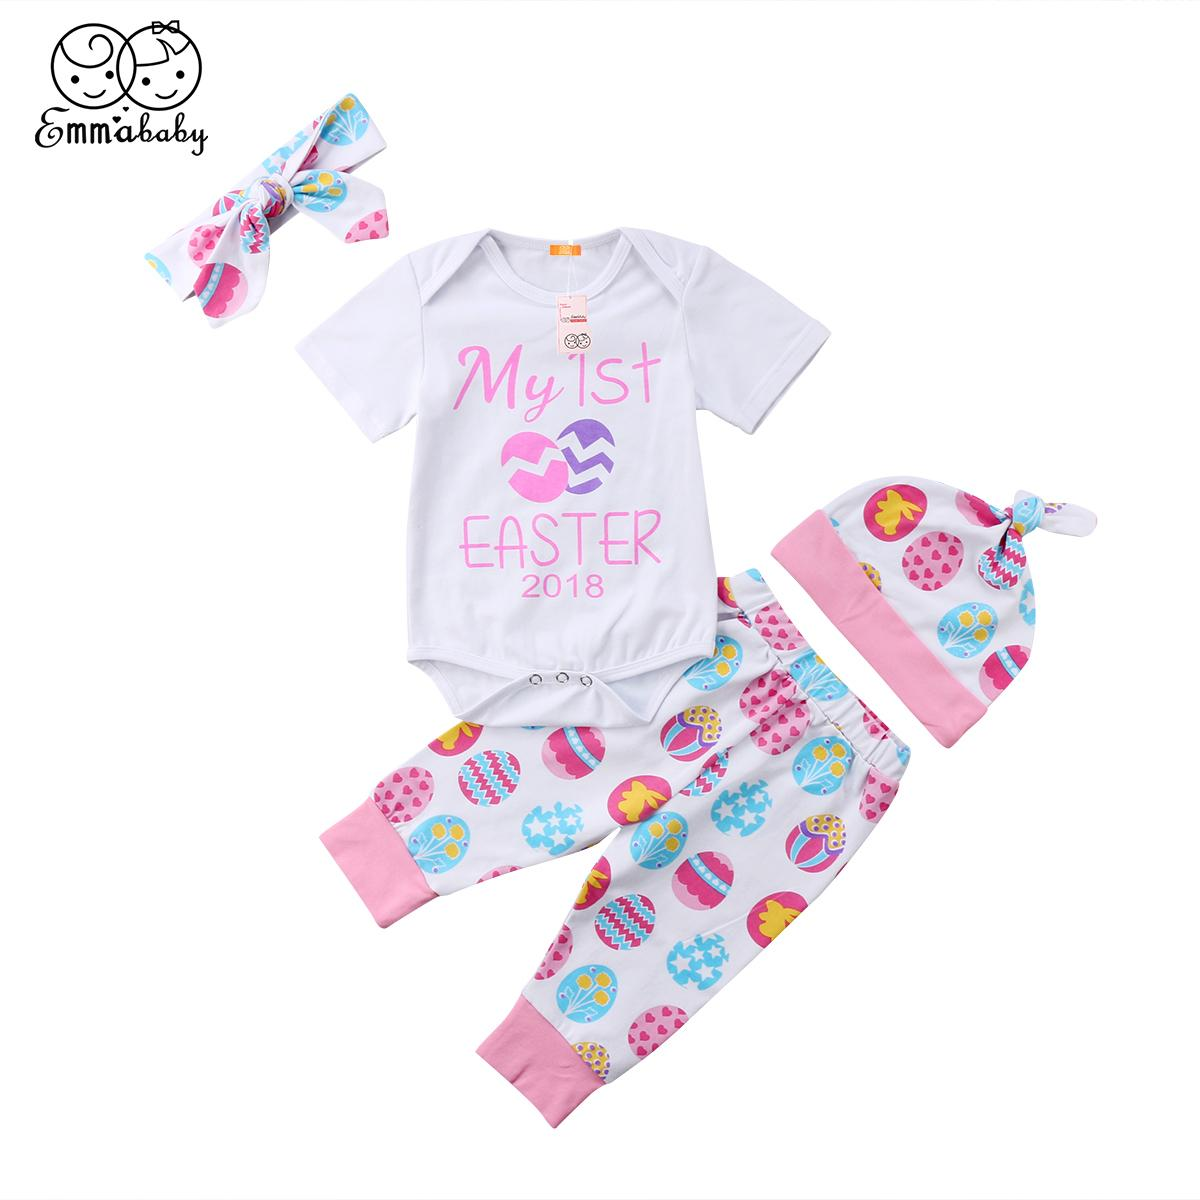 1747f628c 2019 2018 New Kid My First Easter Baby Girl Short Sleeve White Romper Egg  Long Pant Hat Cotton Newborn Outfits Set Clothes 0 24M From Sightly, ...